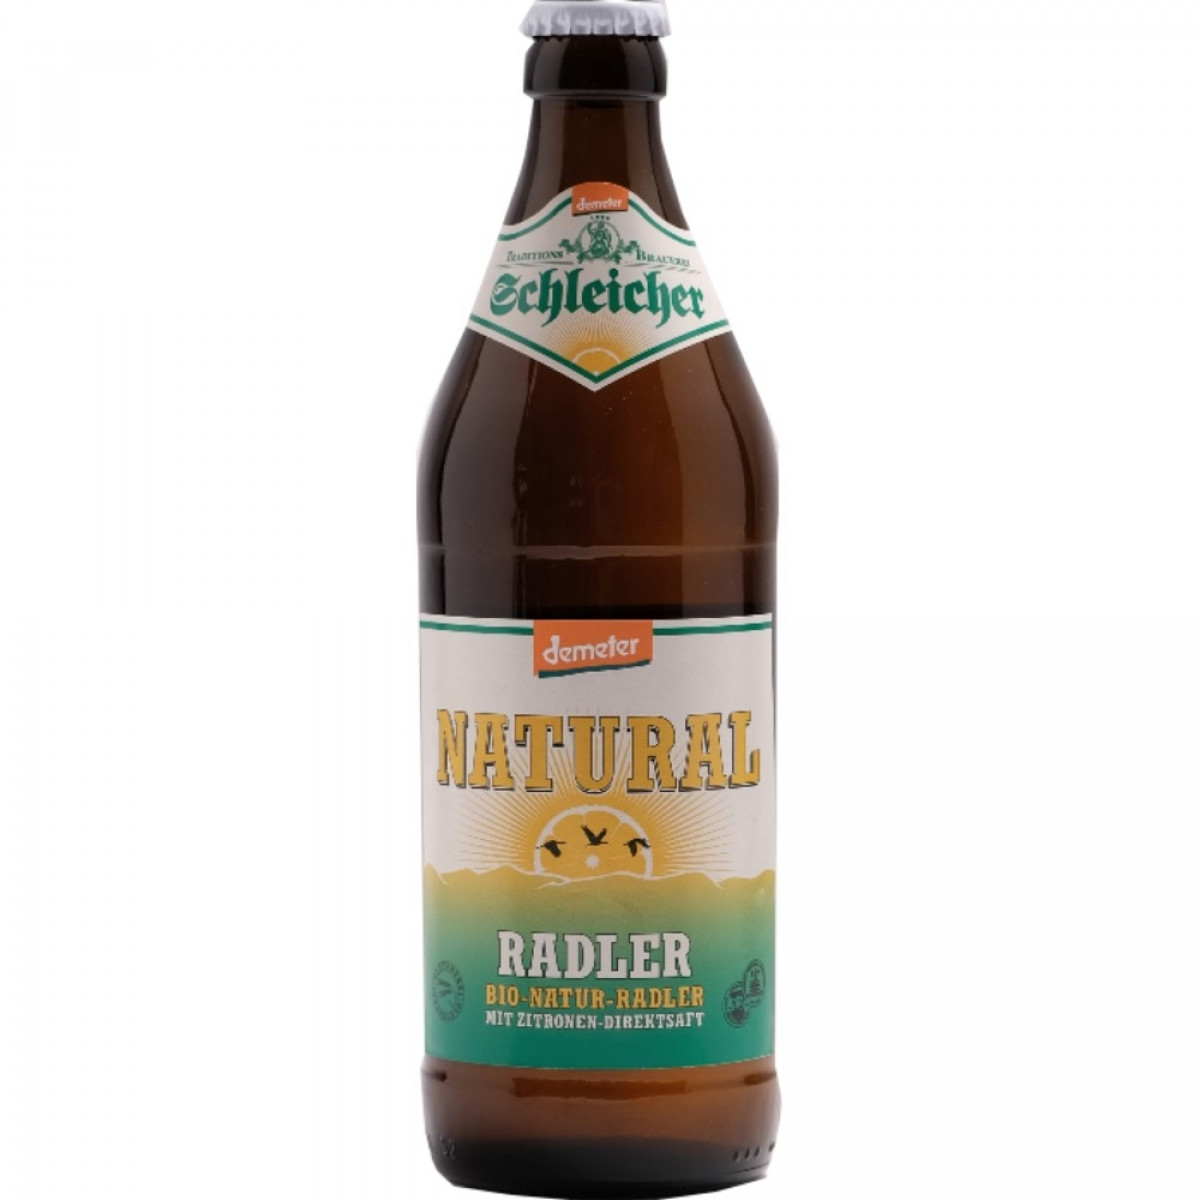 Natural Radler (0.5 Liter)